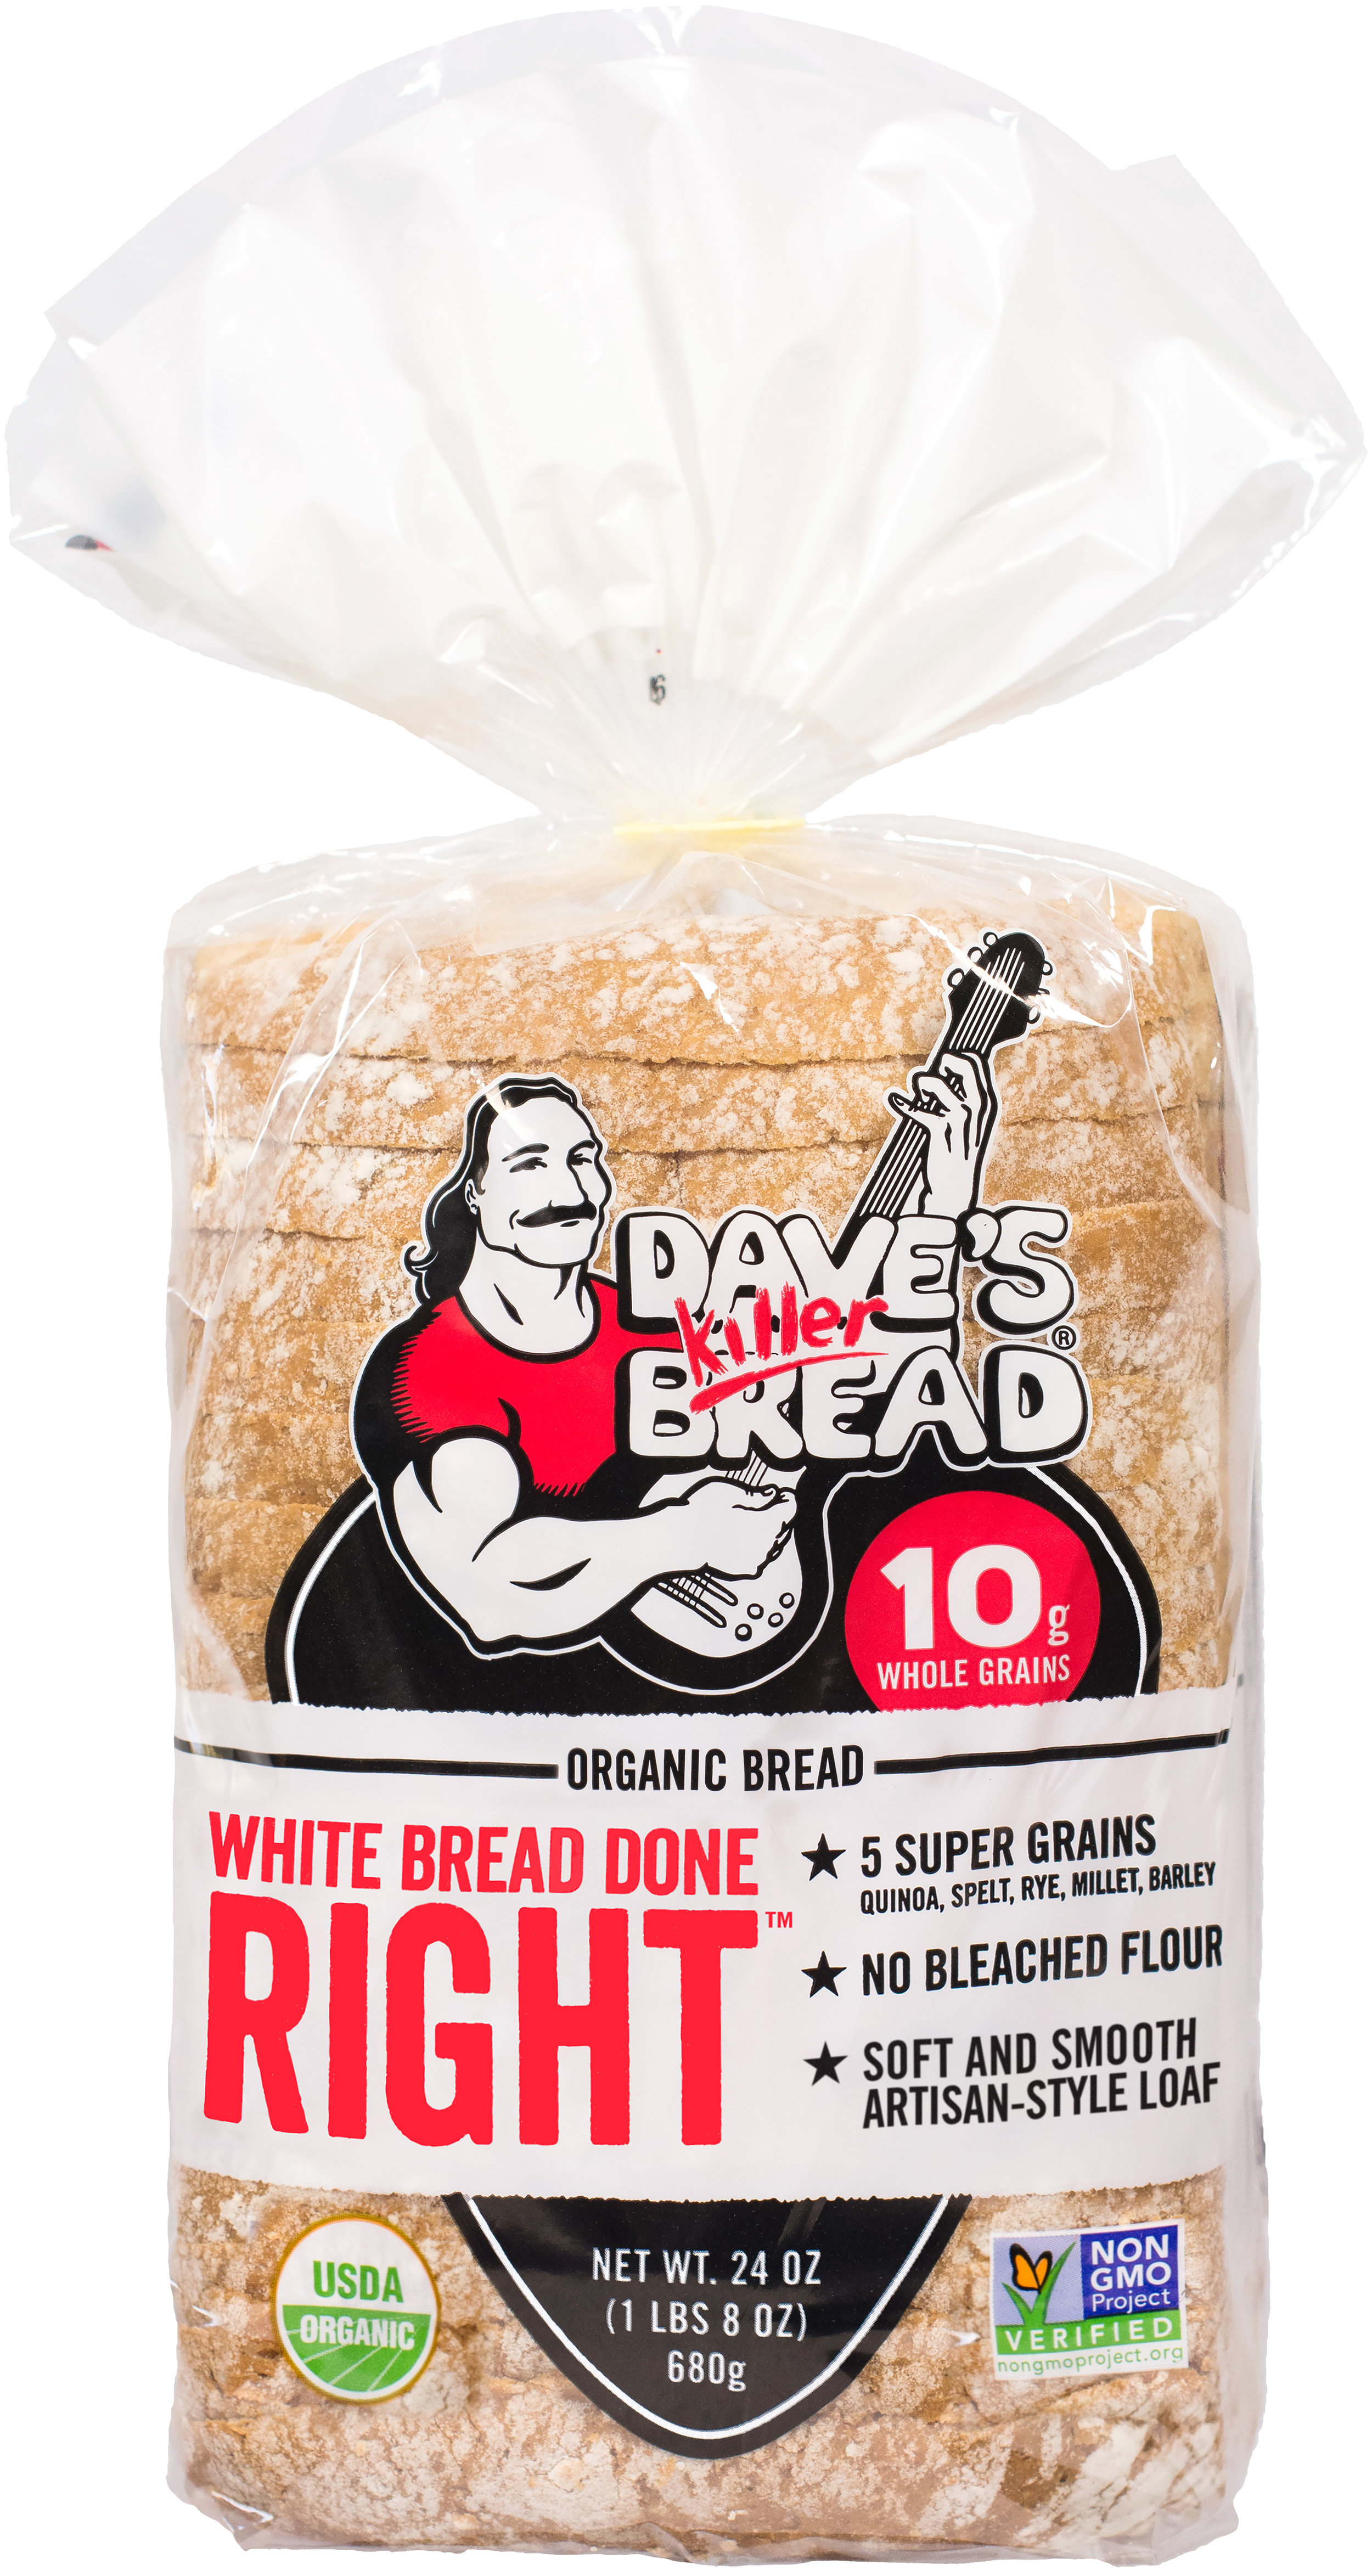 White Bread Done Right®